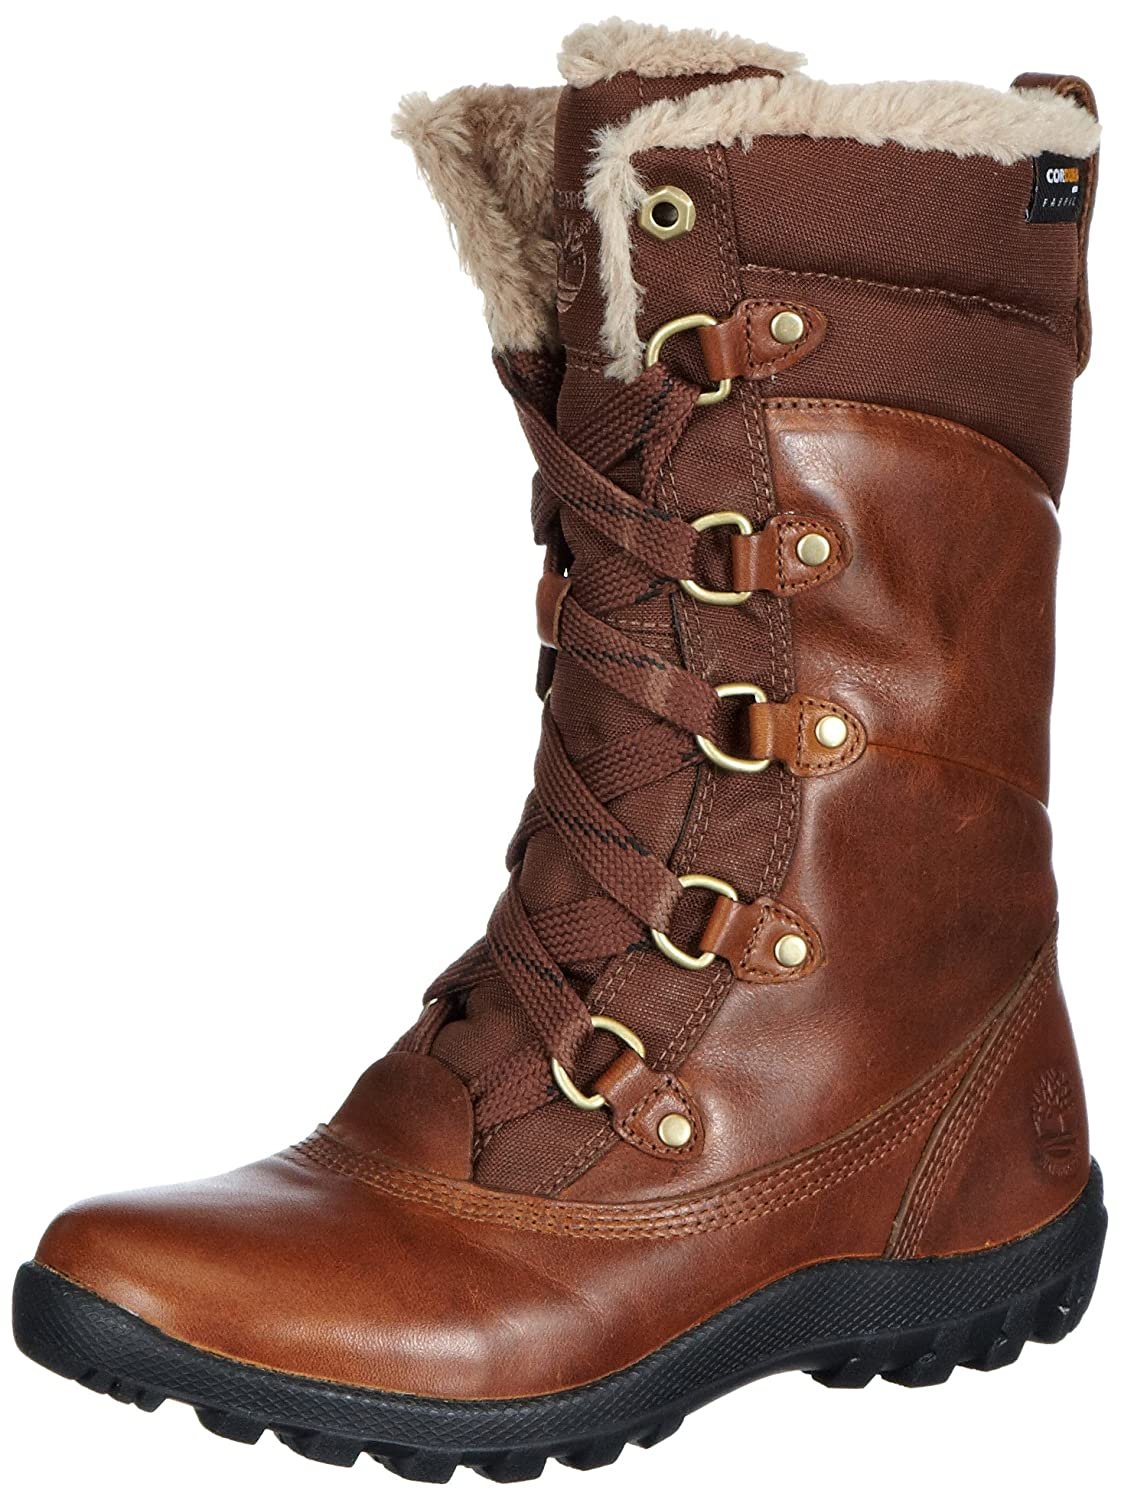 Timberland Ek Mount Hope Leather and Fabric Waterproof, Bottes de neige femme Amazon.fr Chaussures et Sacs